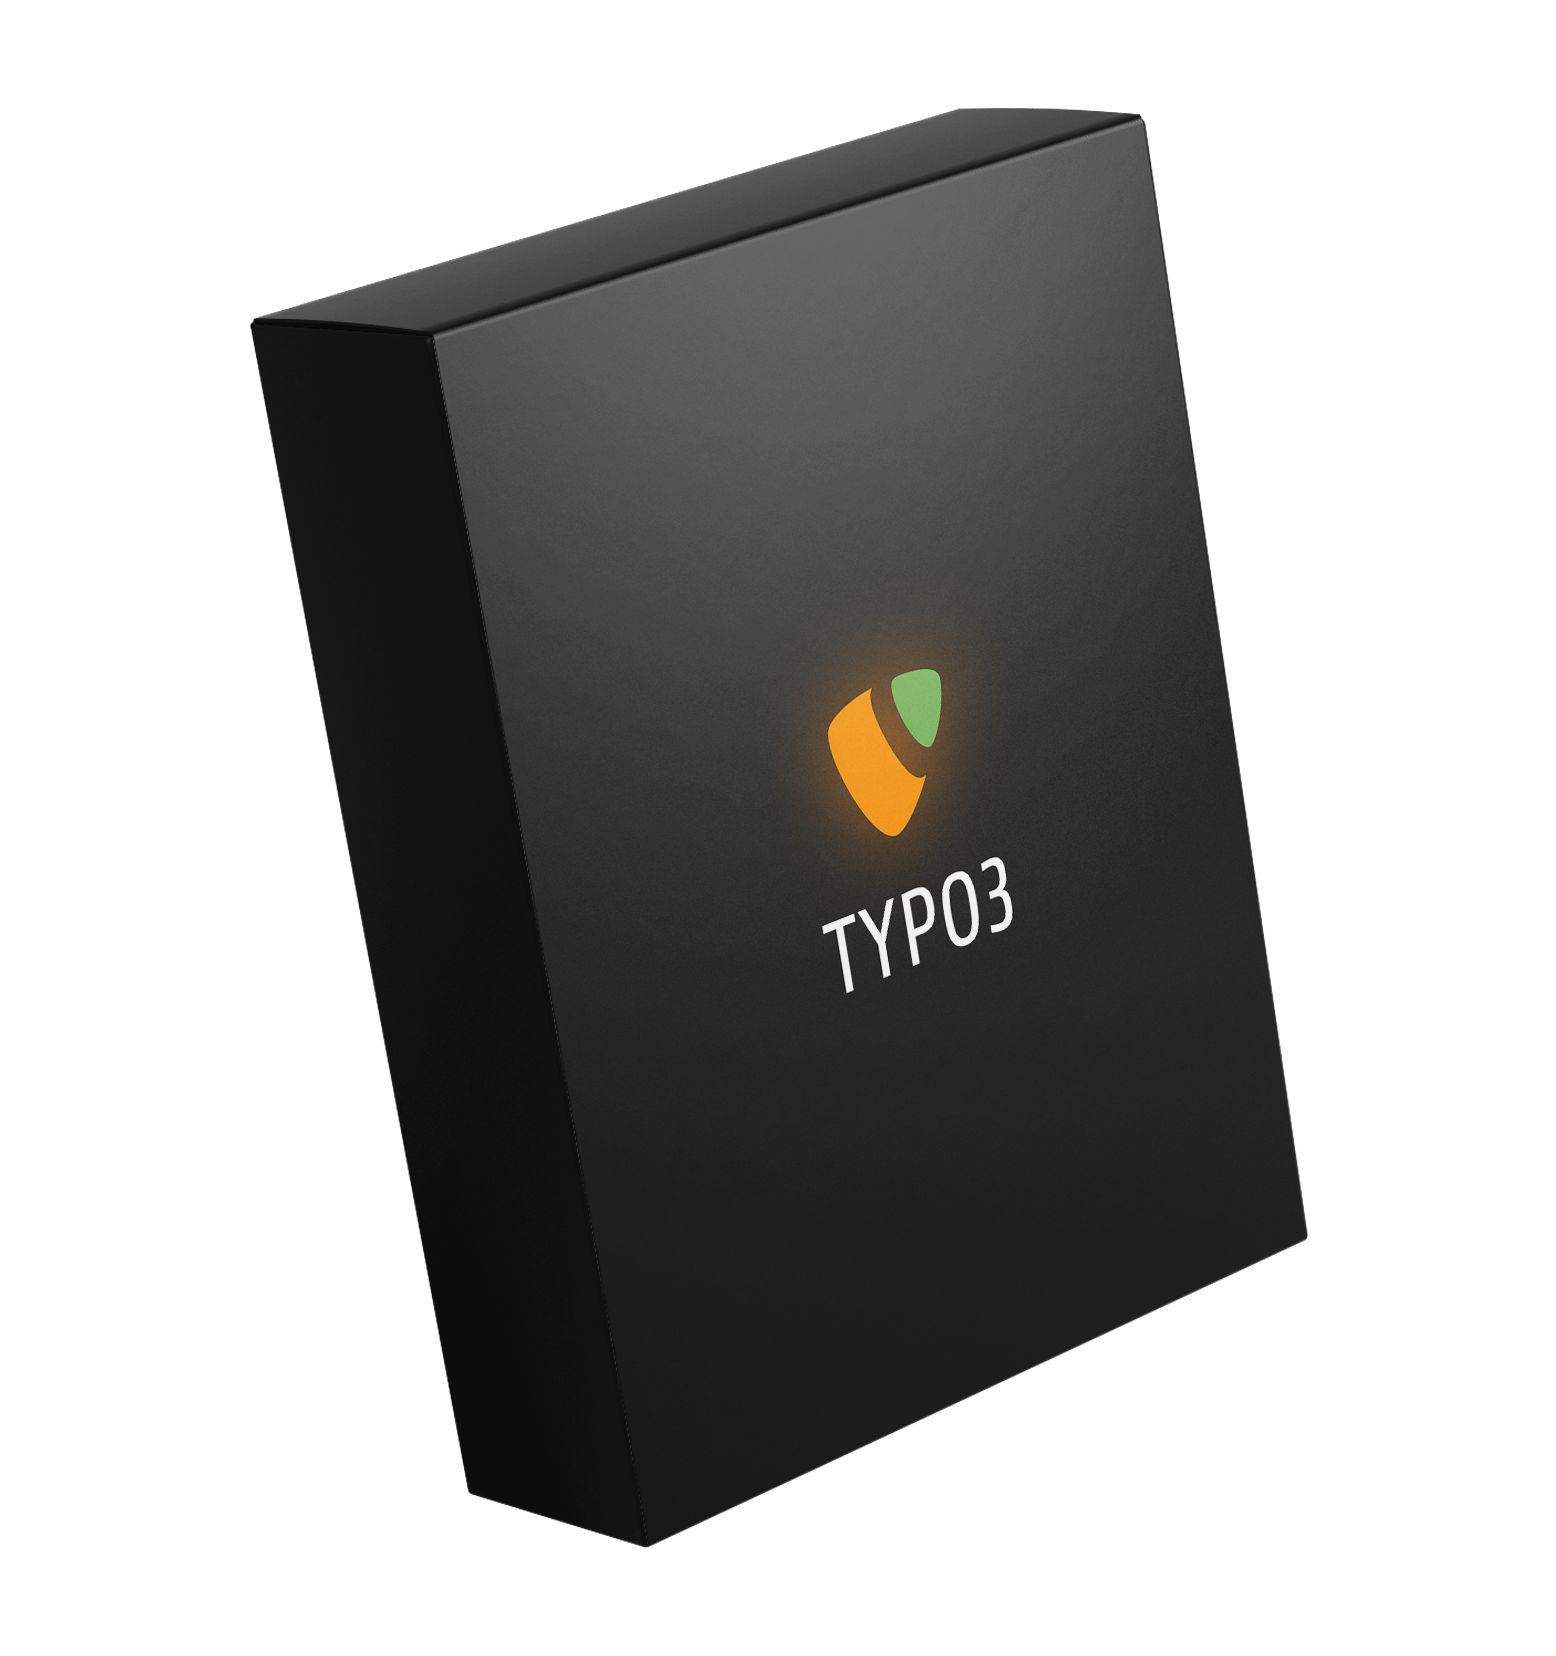 TYPO3 productbox